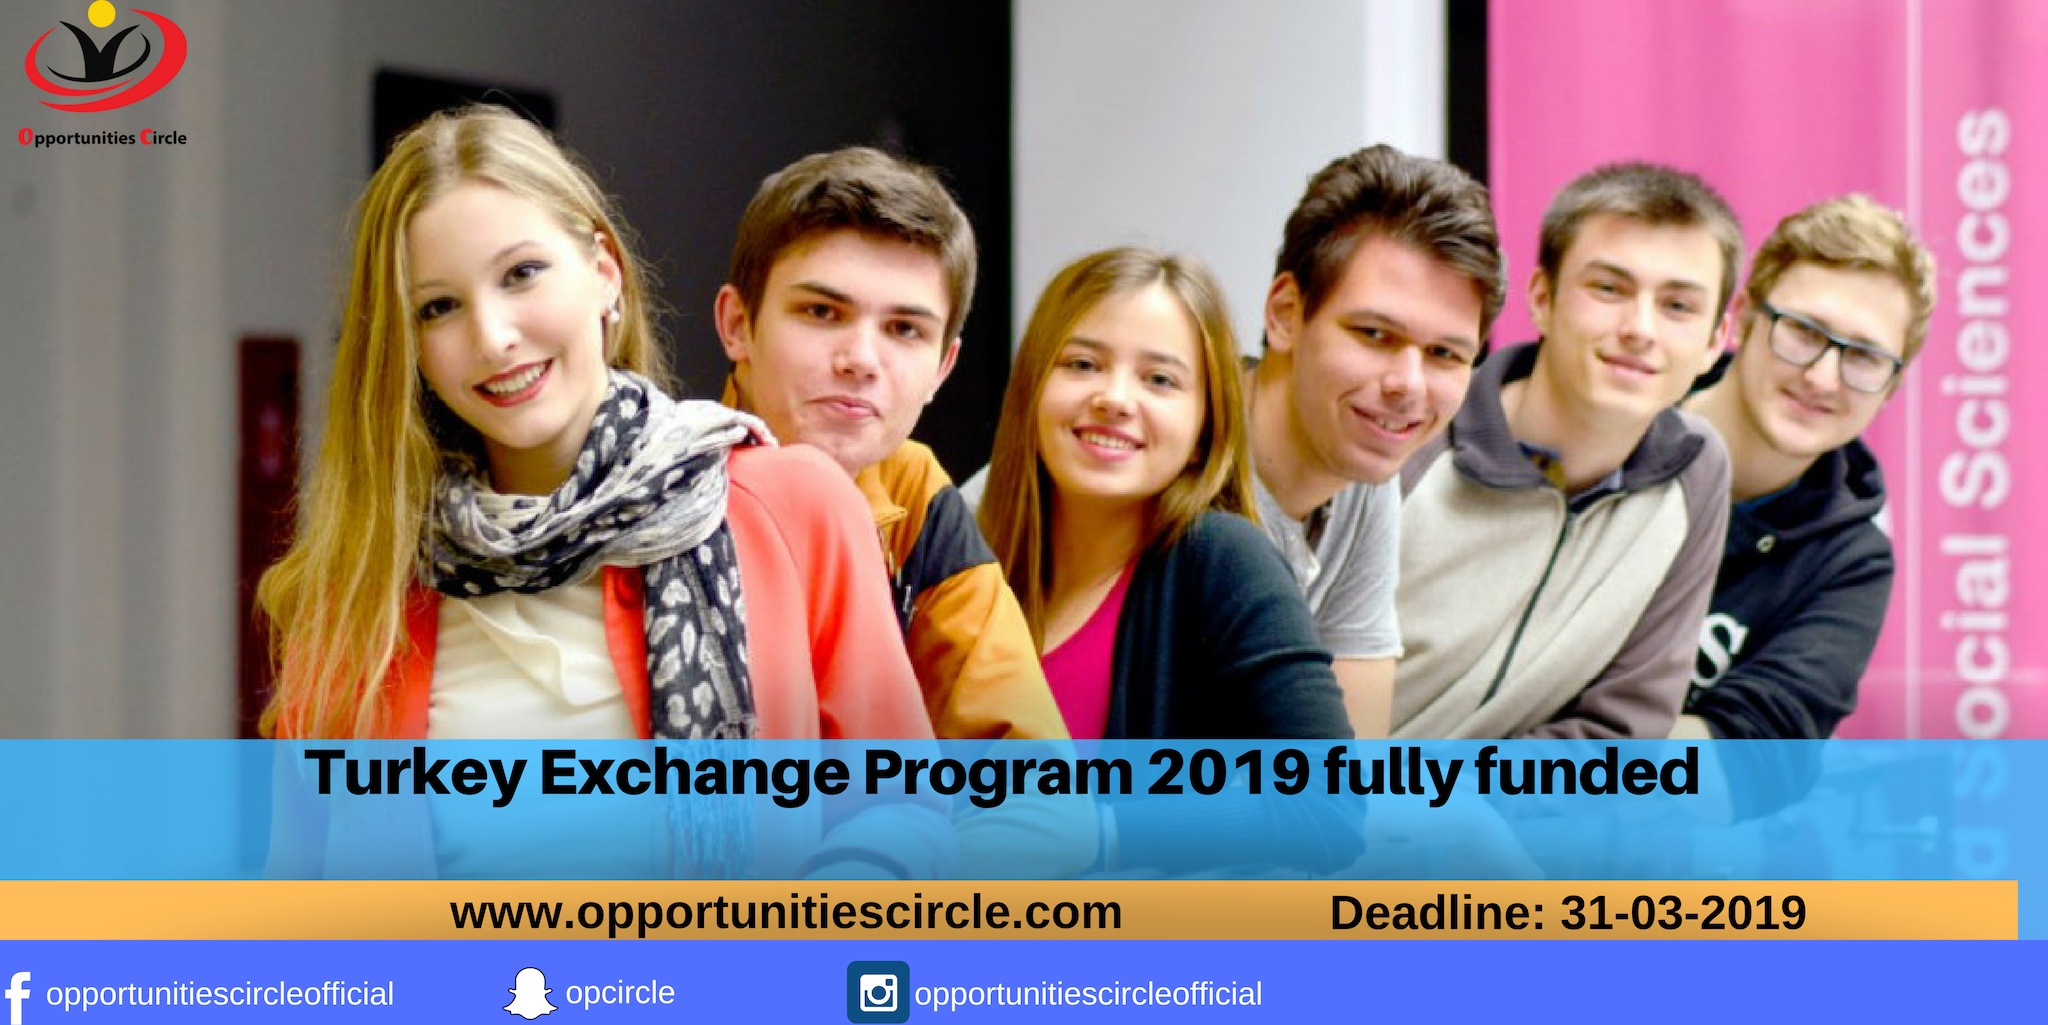 Turkey Exchange Program 2019 [Fully Funded] - Opportunities Circle